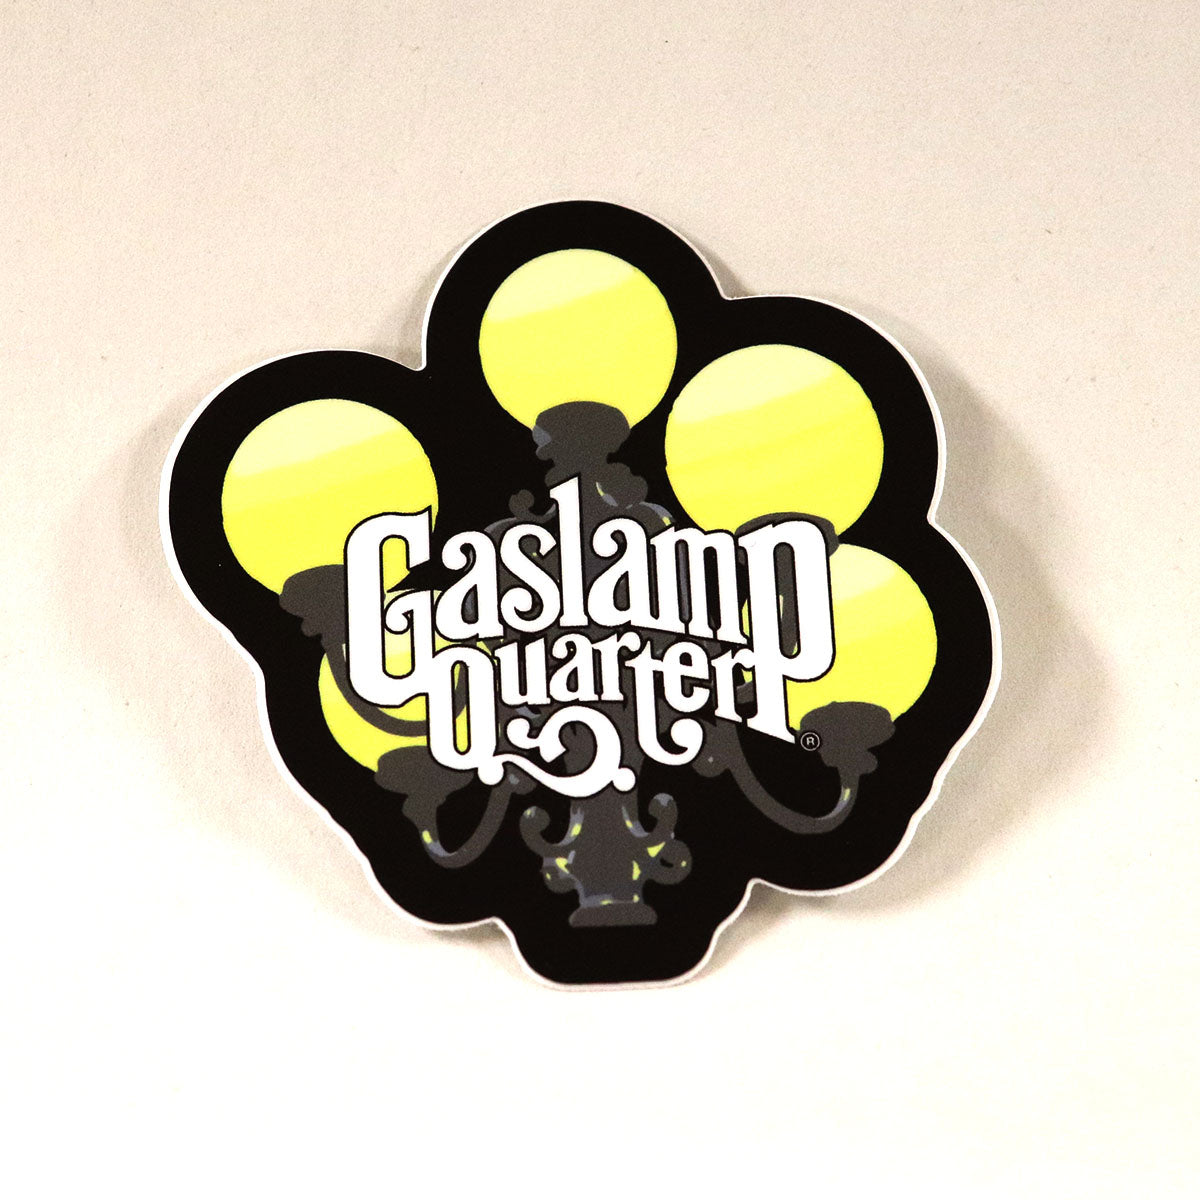 Sticker of a full color Gaslamp with the Gaslamp Quarter logo placed in the middle in white letters